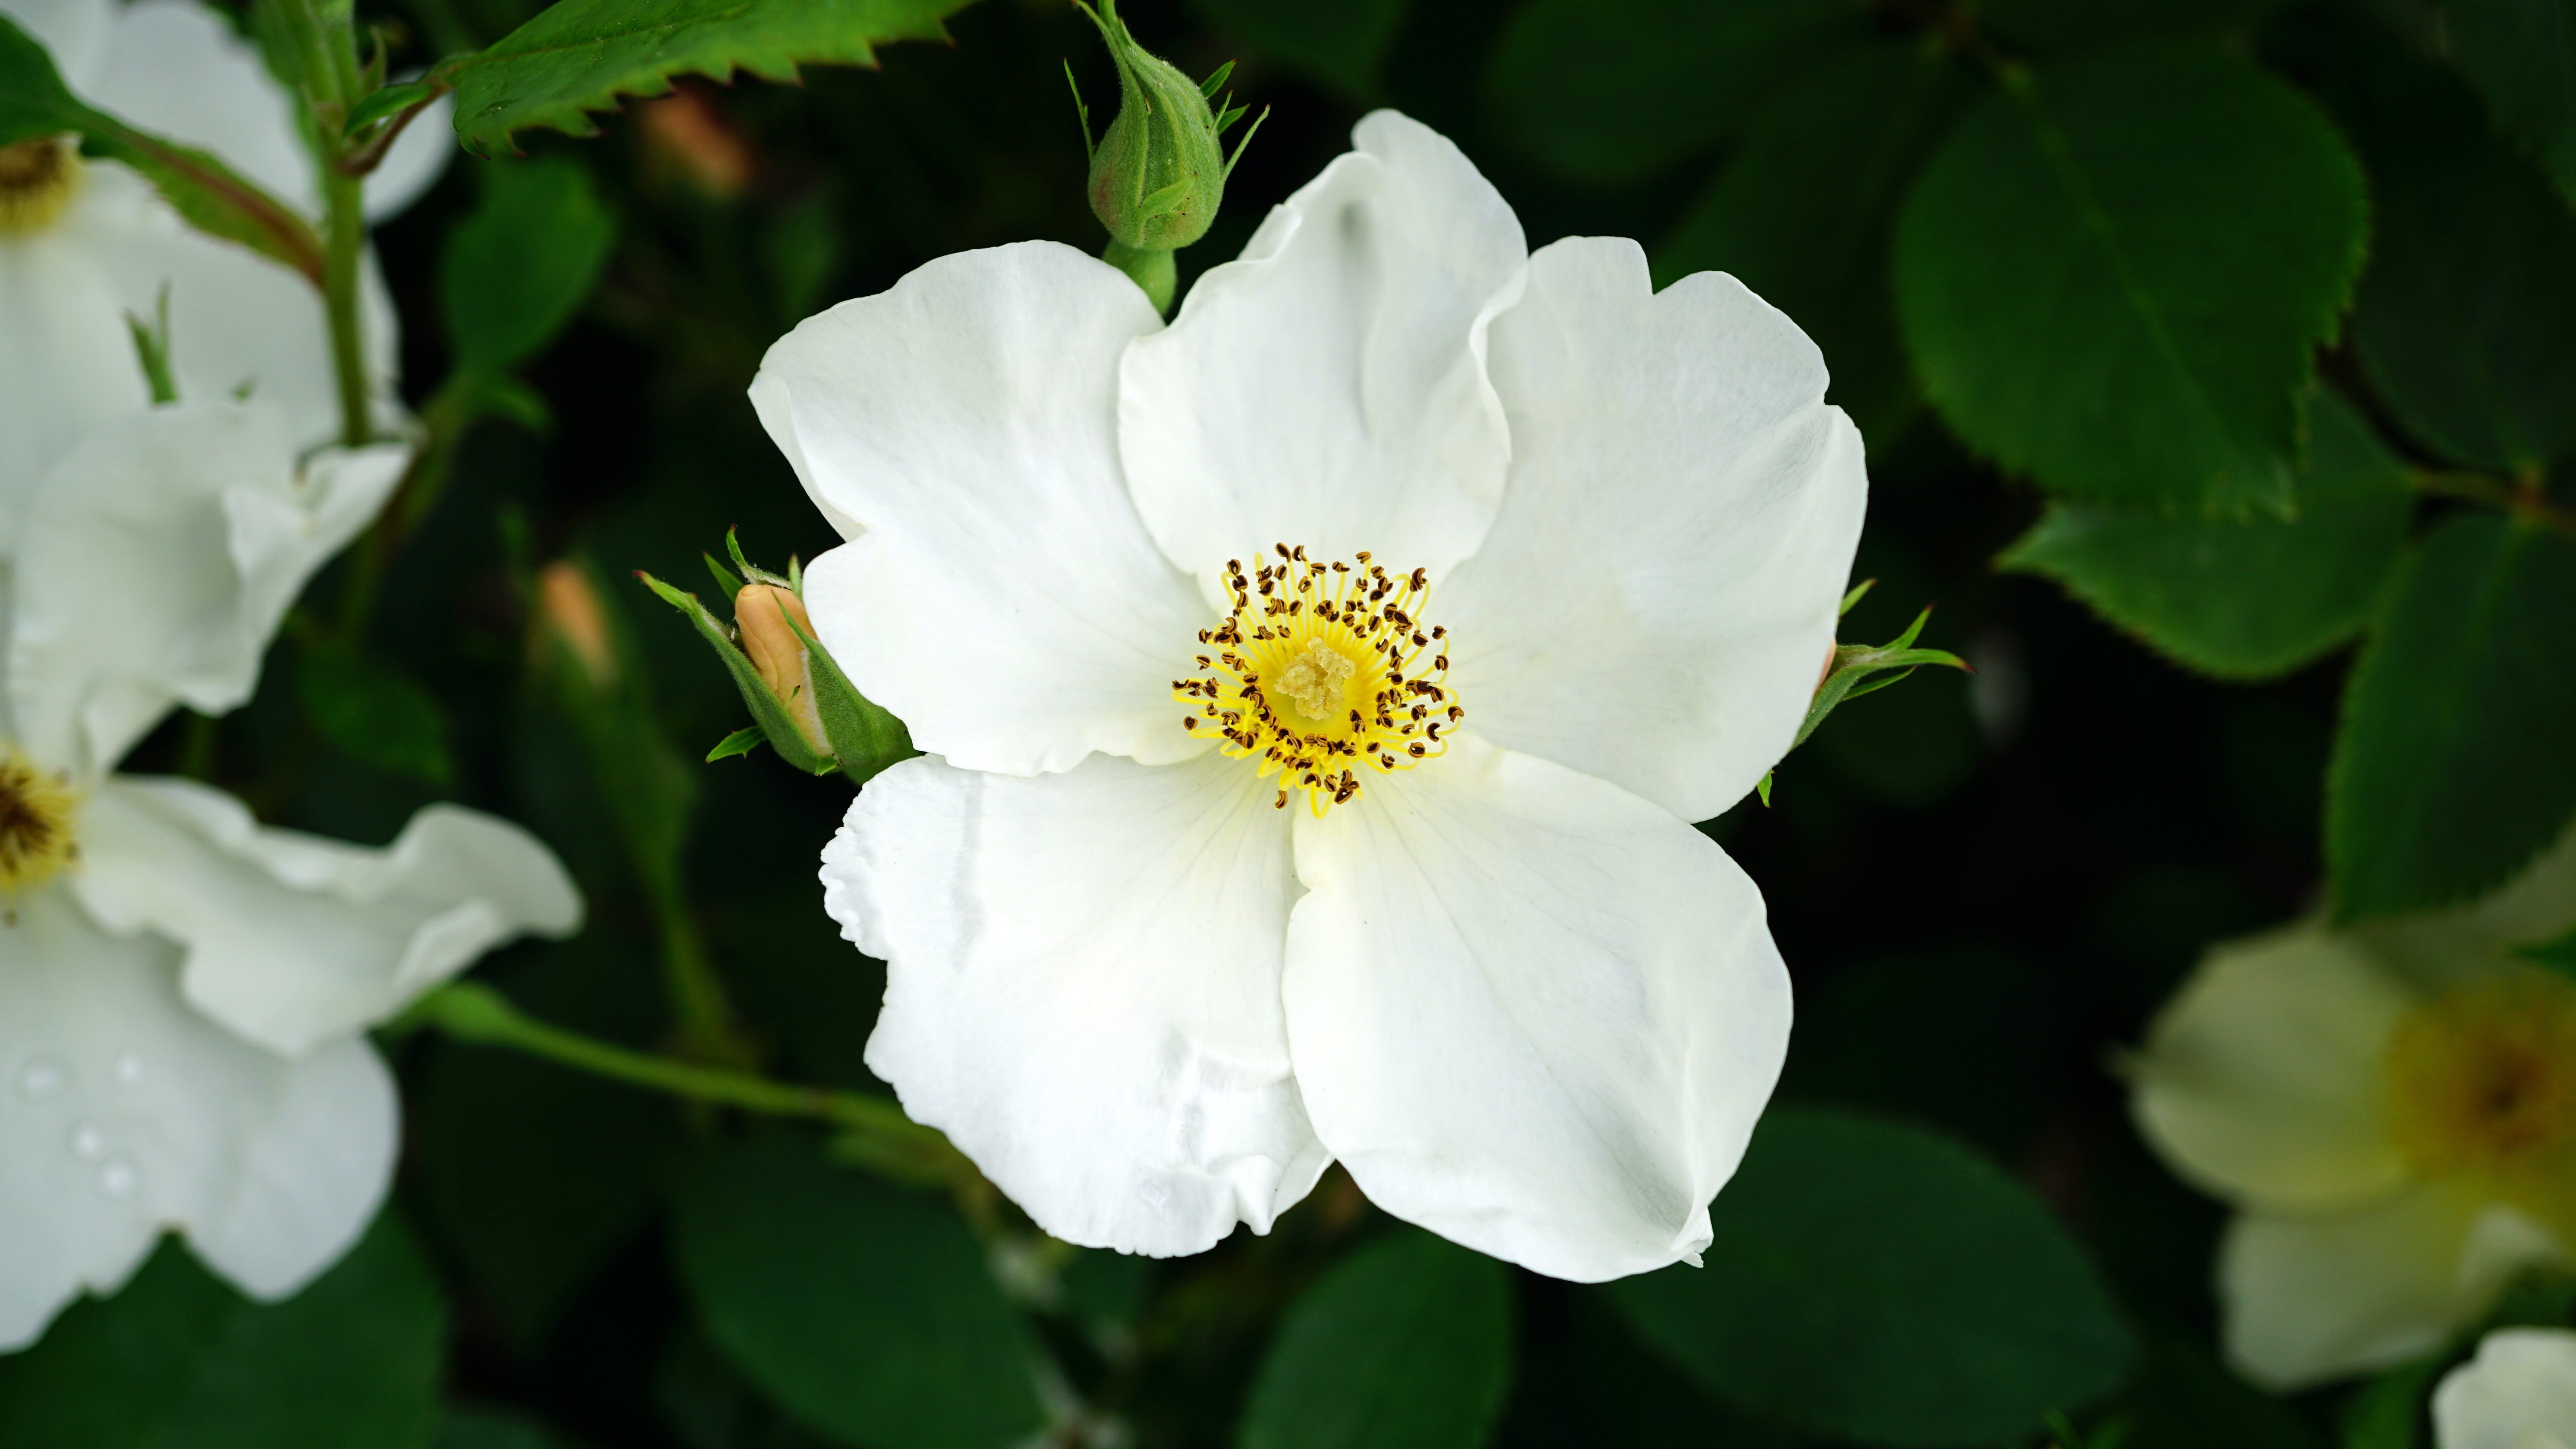 Close-up Photography of White Rose Flower in Bloom